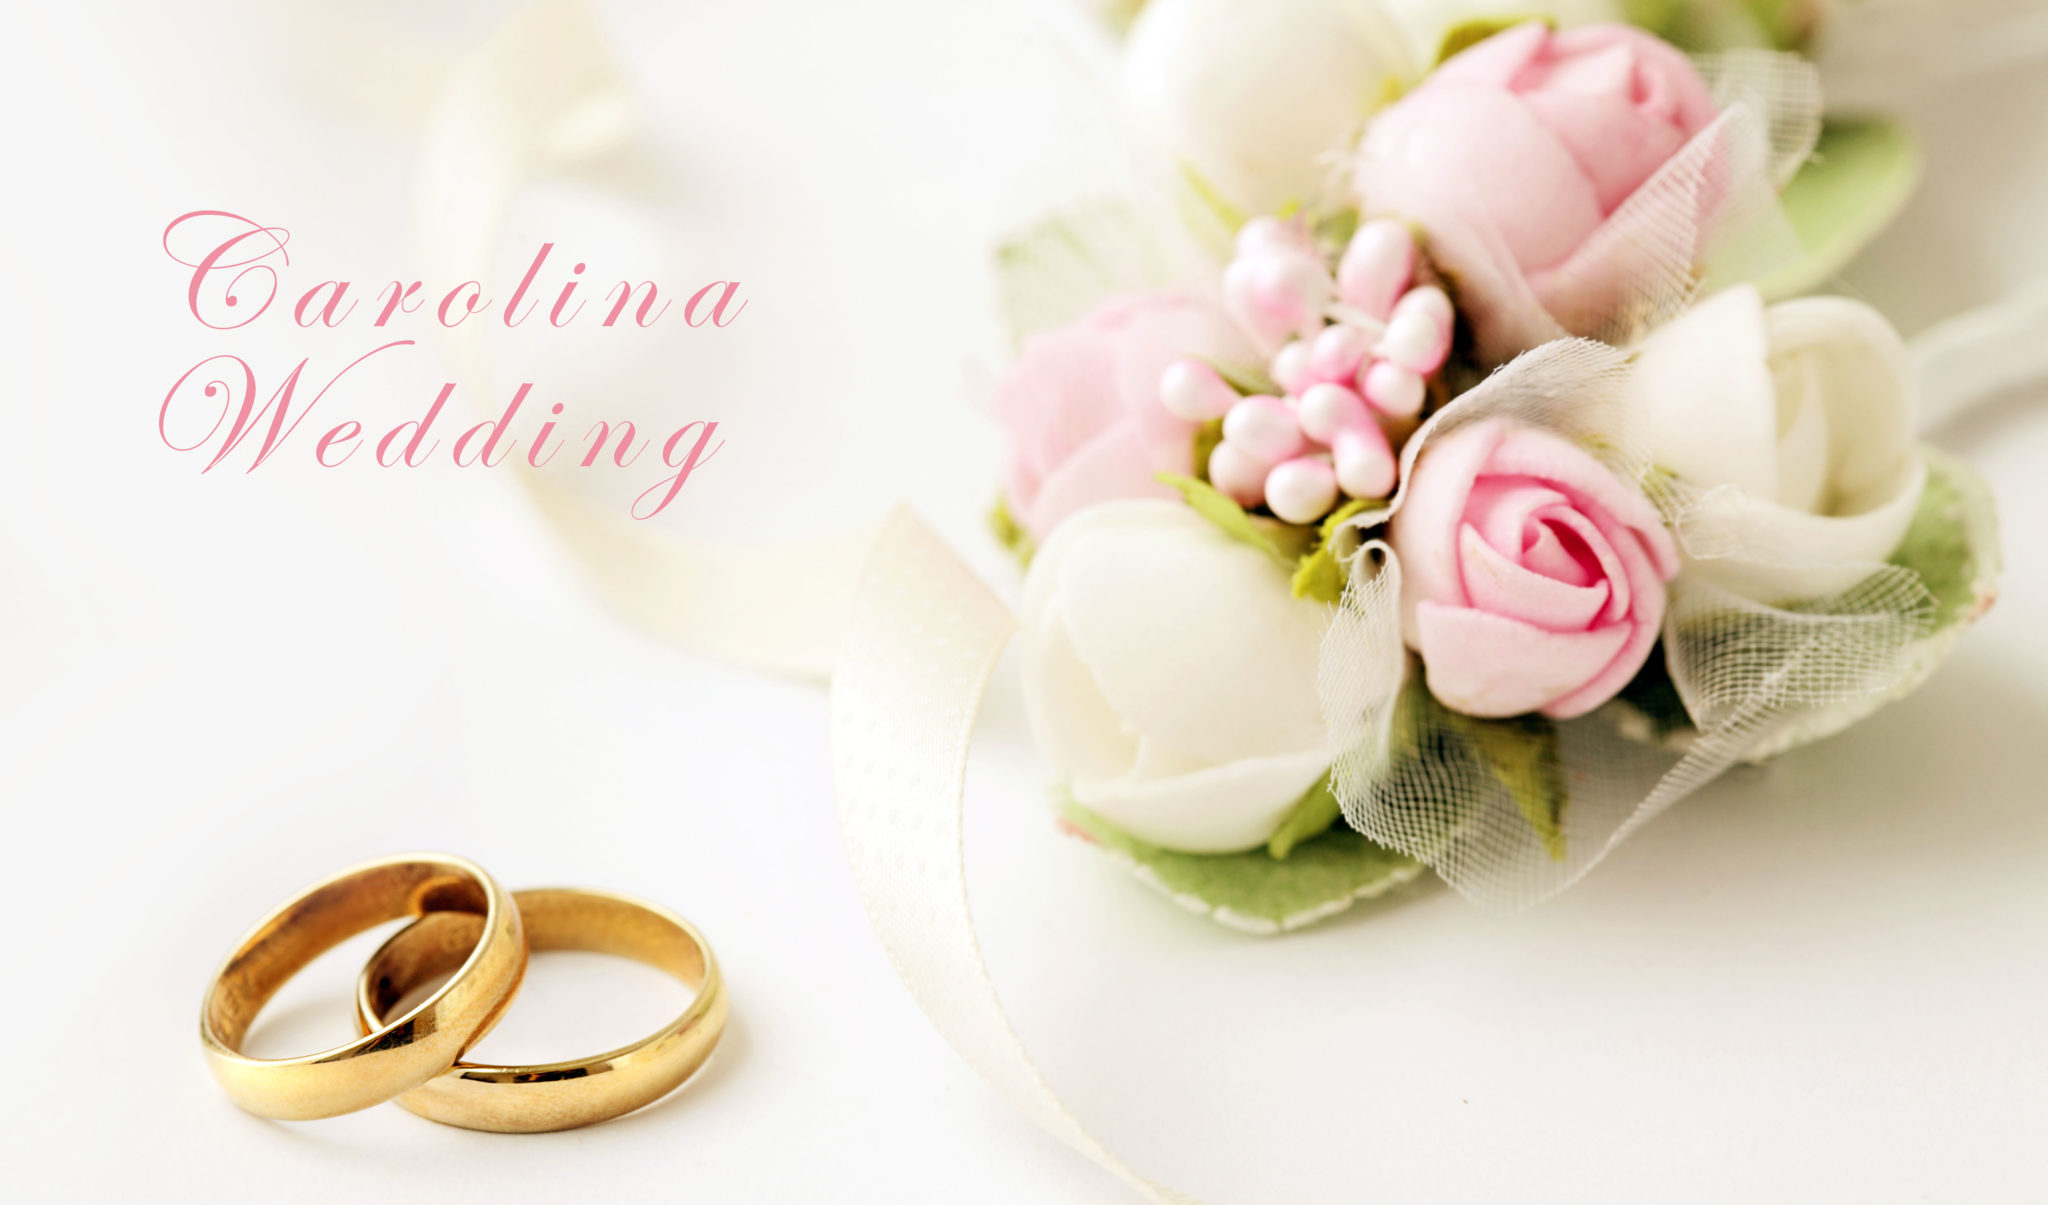 carolina-wedding